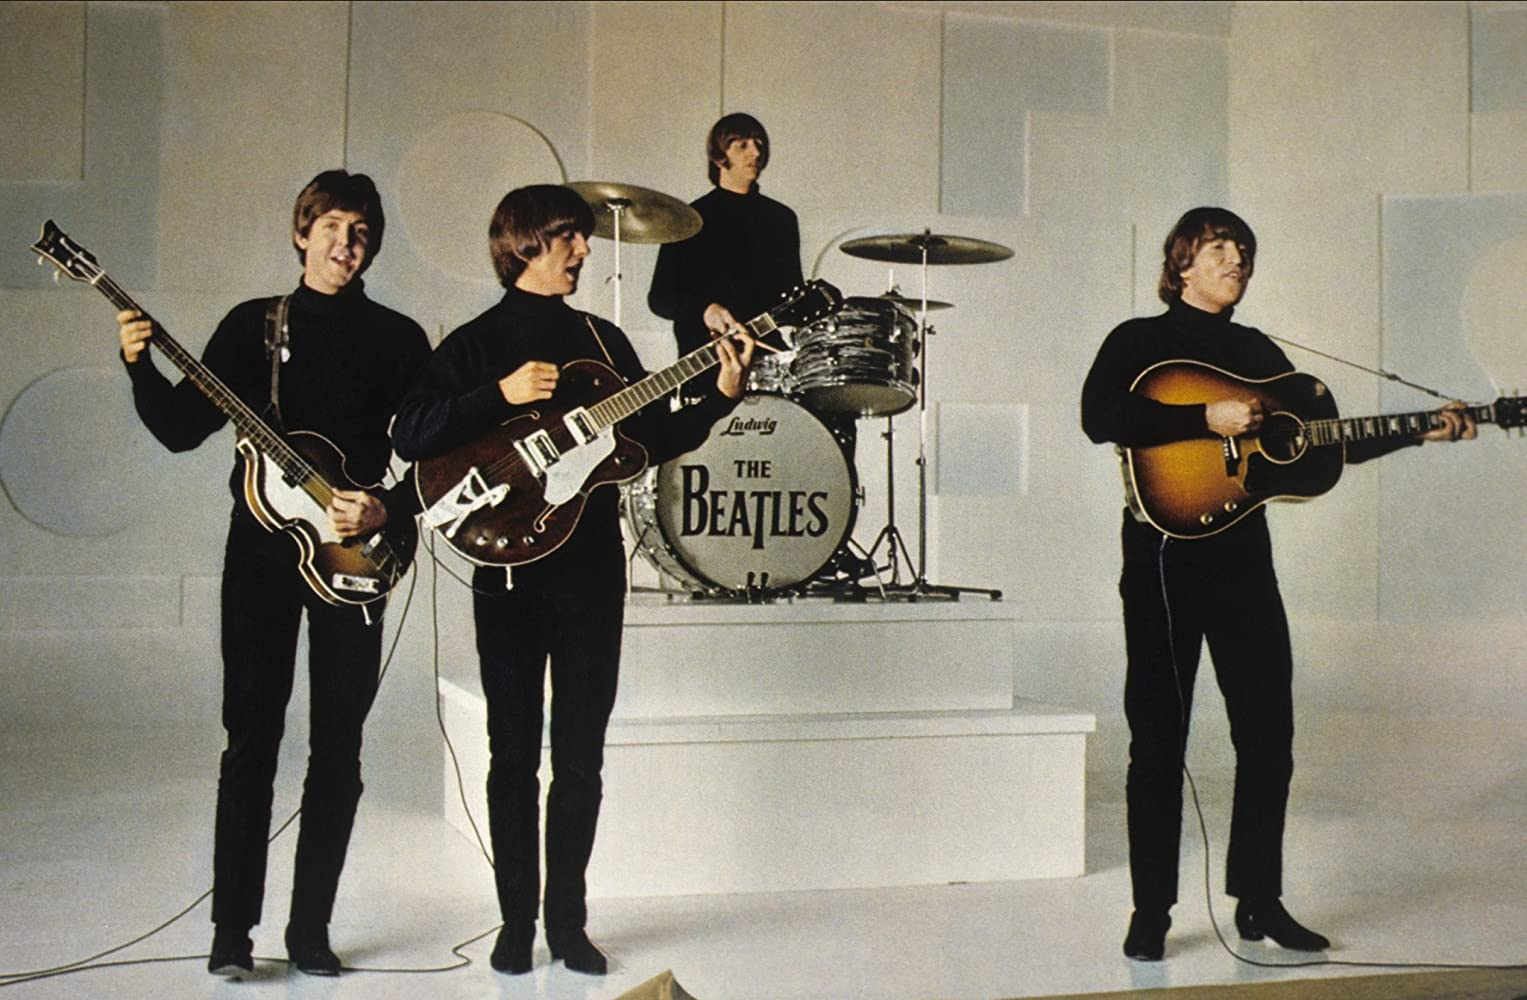 Paul McCartney John Lennon George Harrison Ringo Starr and The Beatles in Help 1965